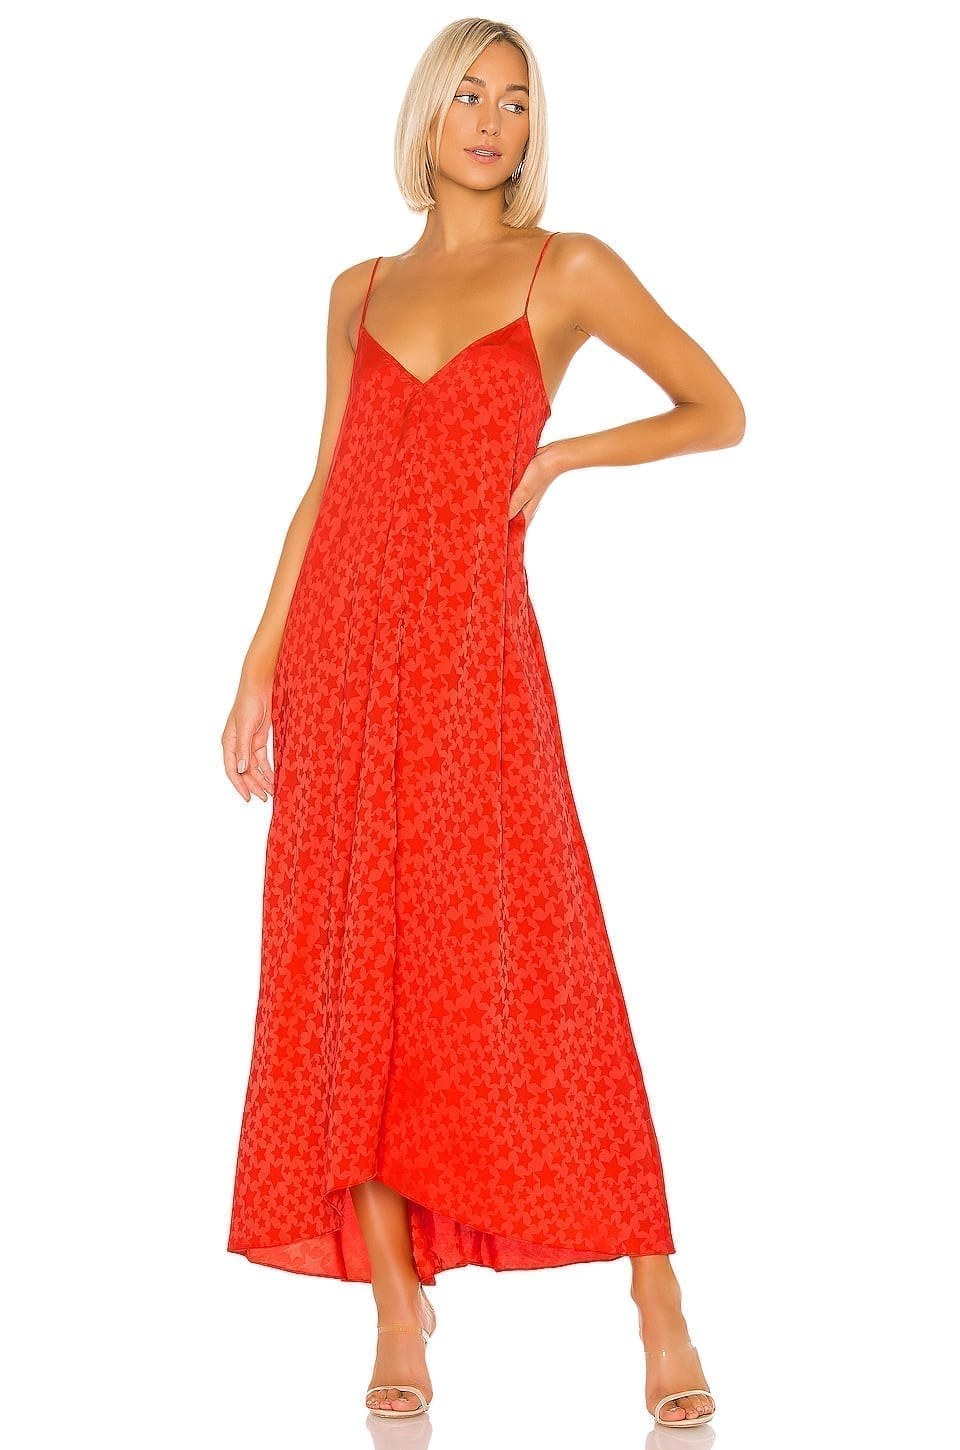 L'ACADEMIE The Amine Maxi Dress